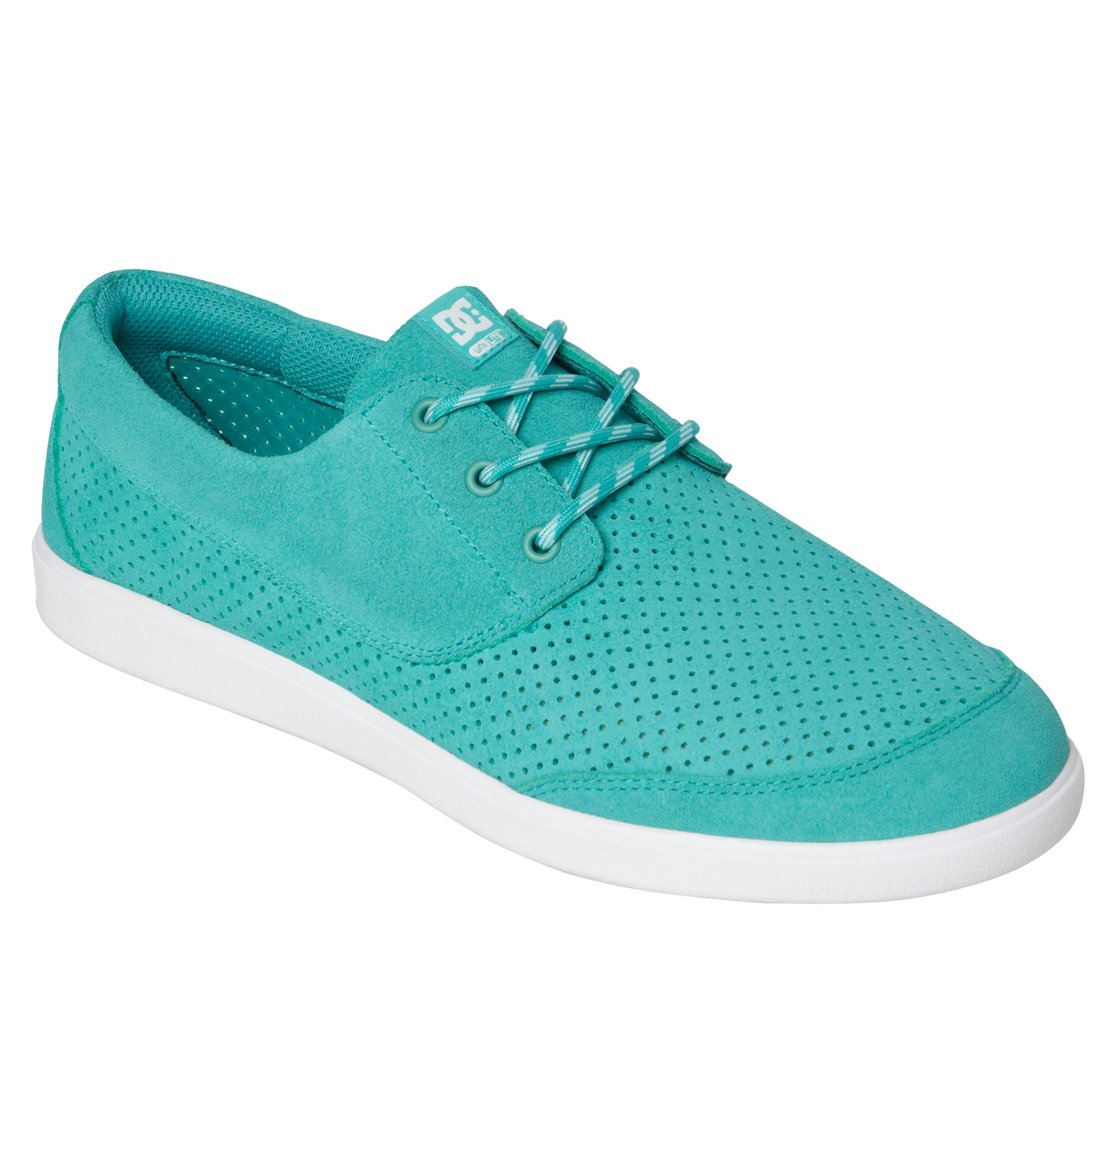 Shop a wide selection of pool shoes from DICK'S Sporting Goods. Enjoy traction for water aerobics and swimming with pool shoes for men, women and kids.